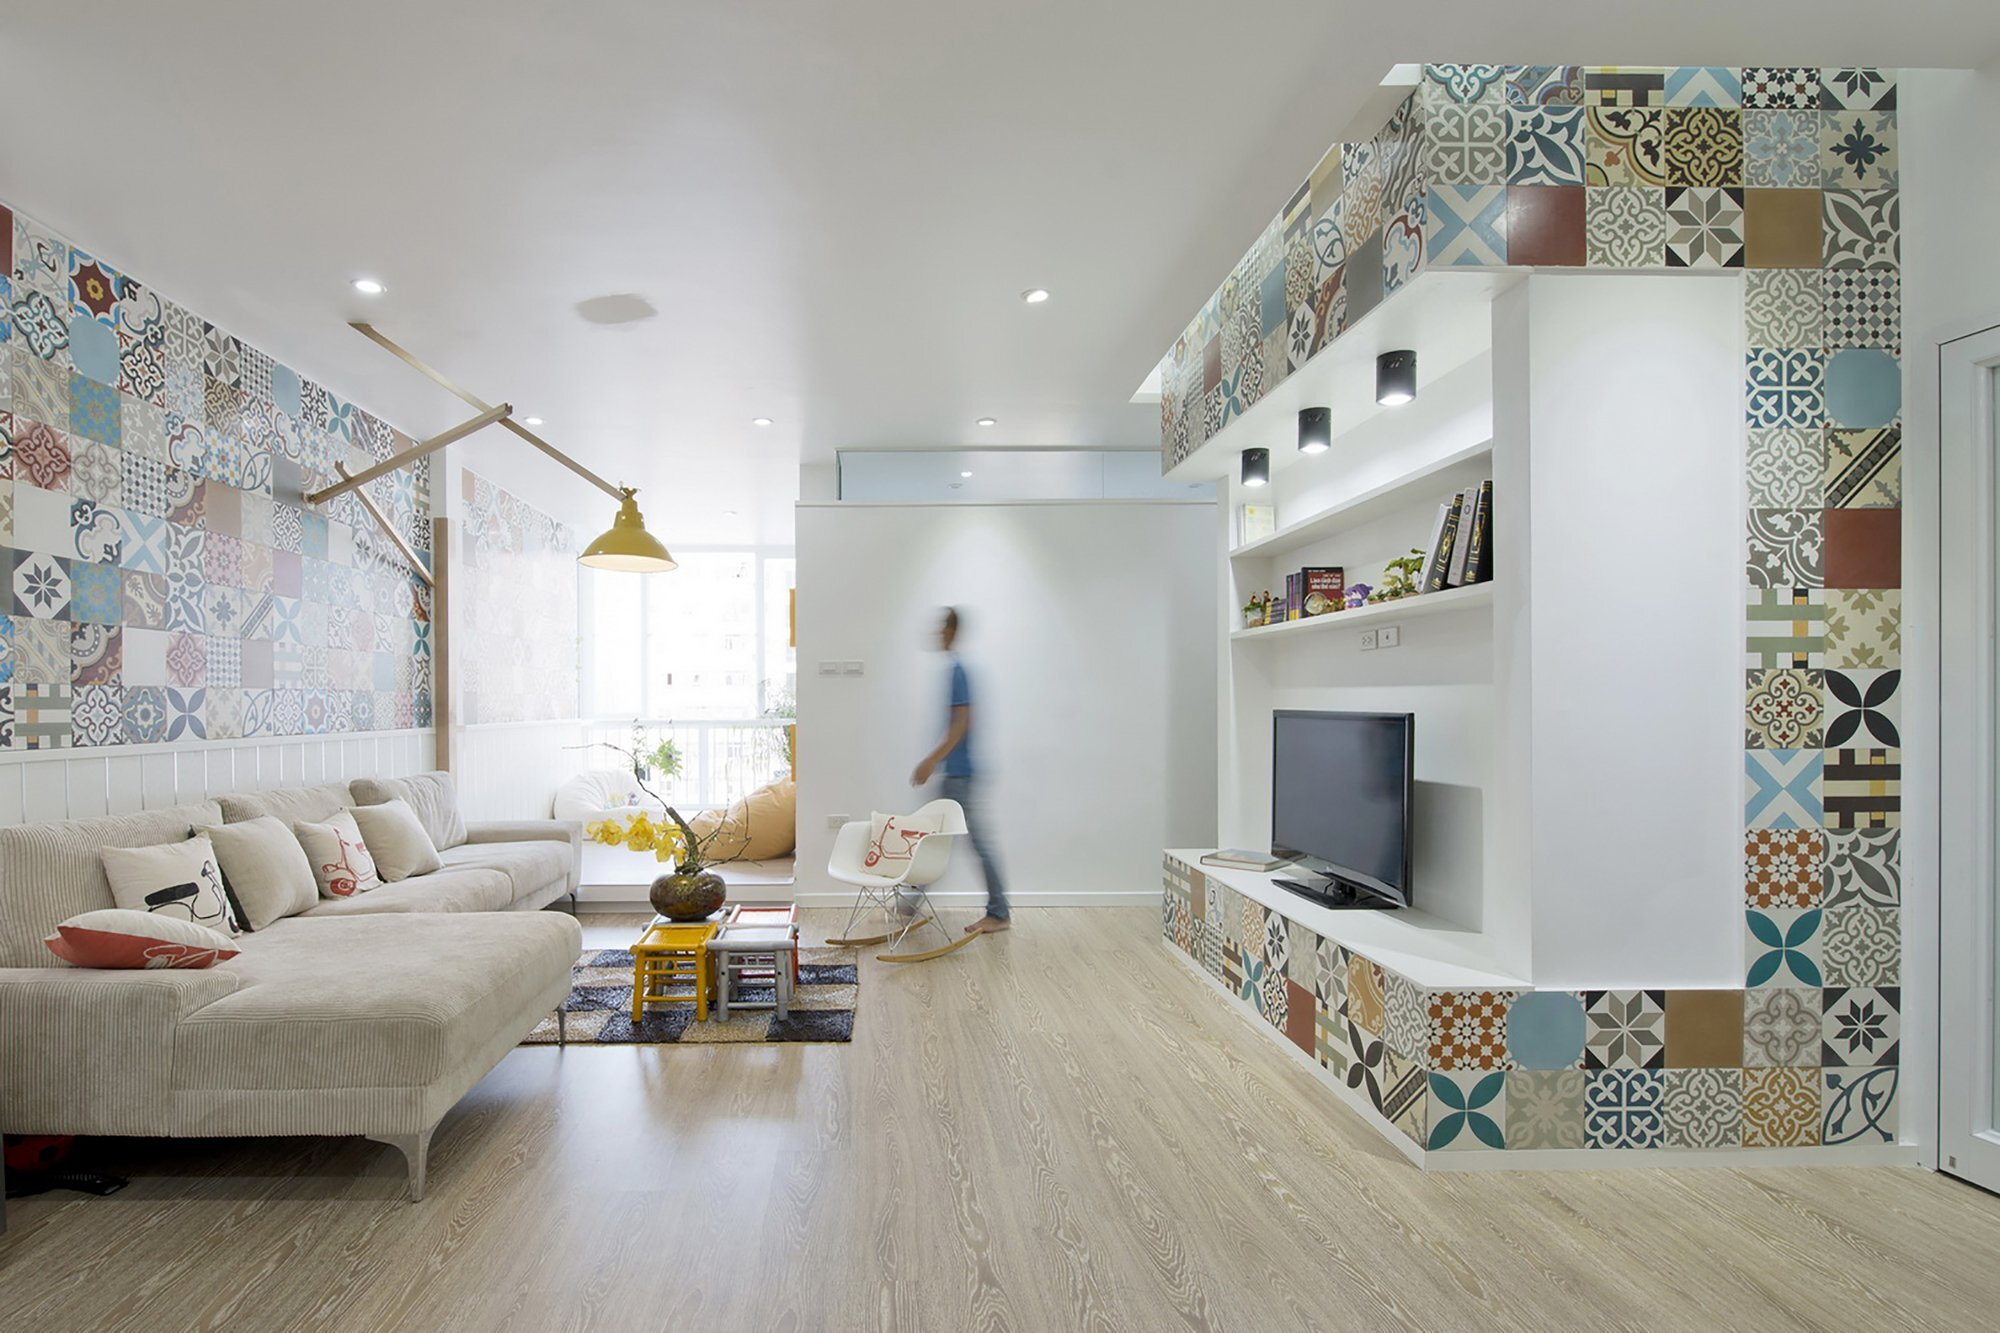 HT Apartment in Hanoi - A Small Space for Five